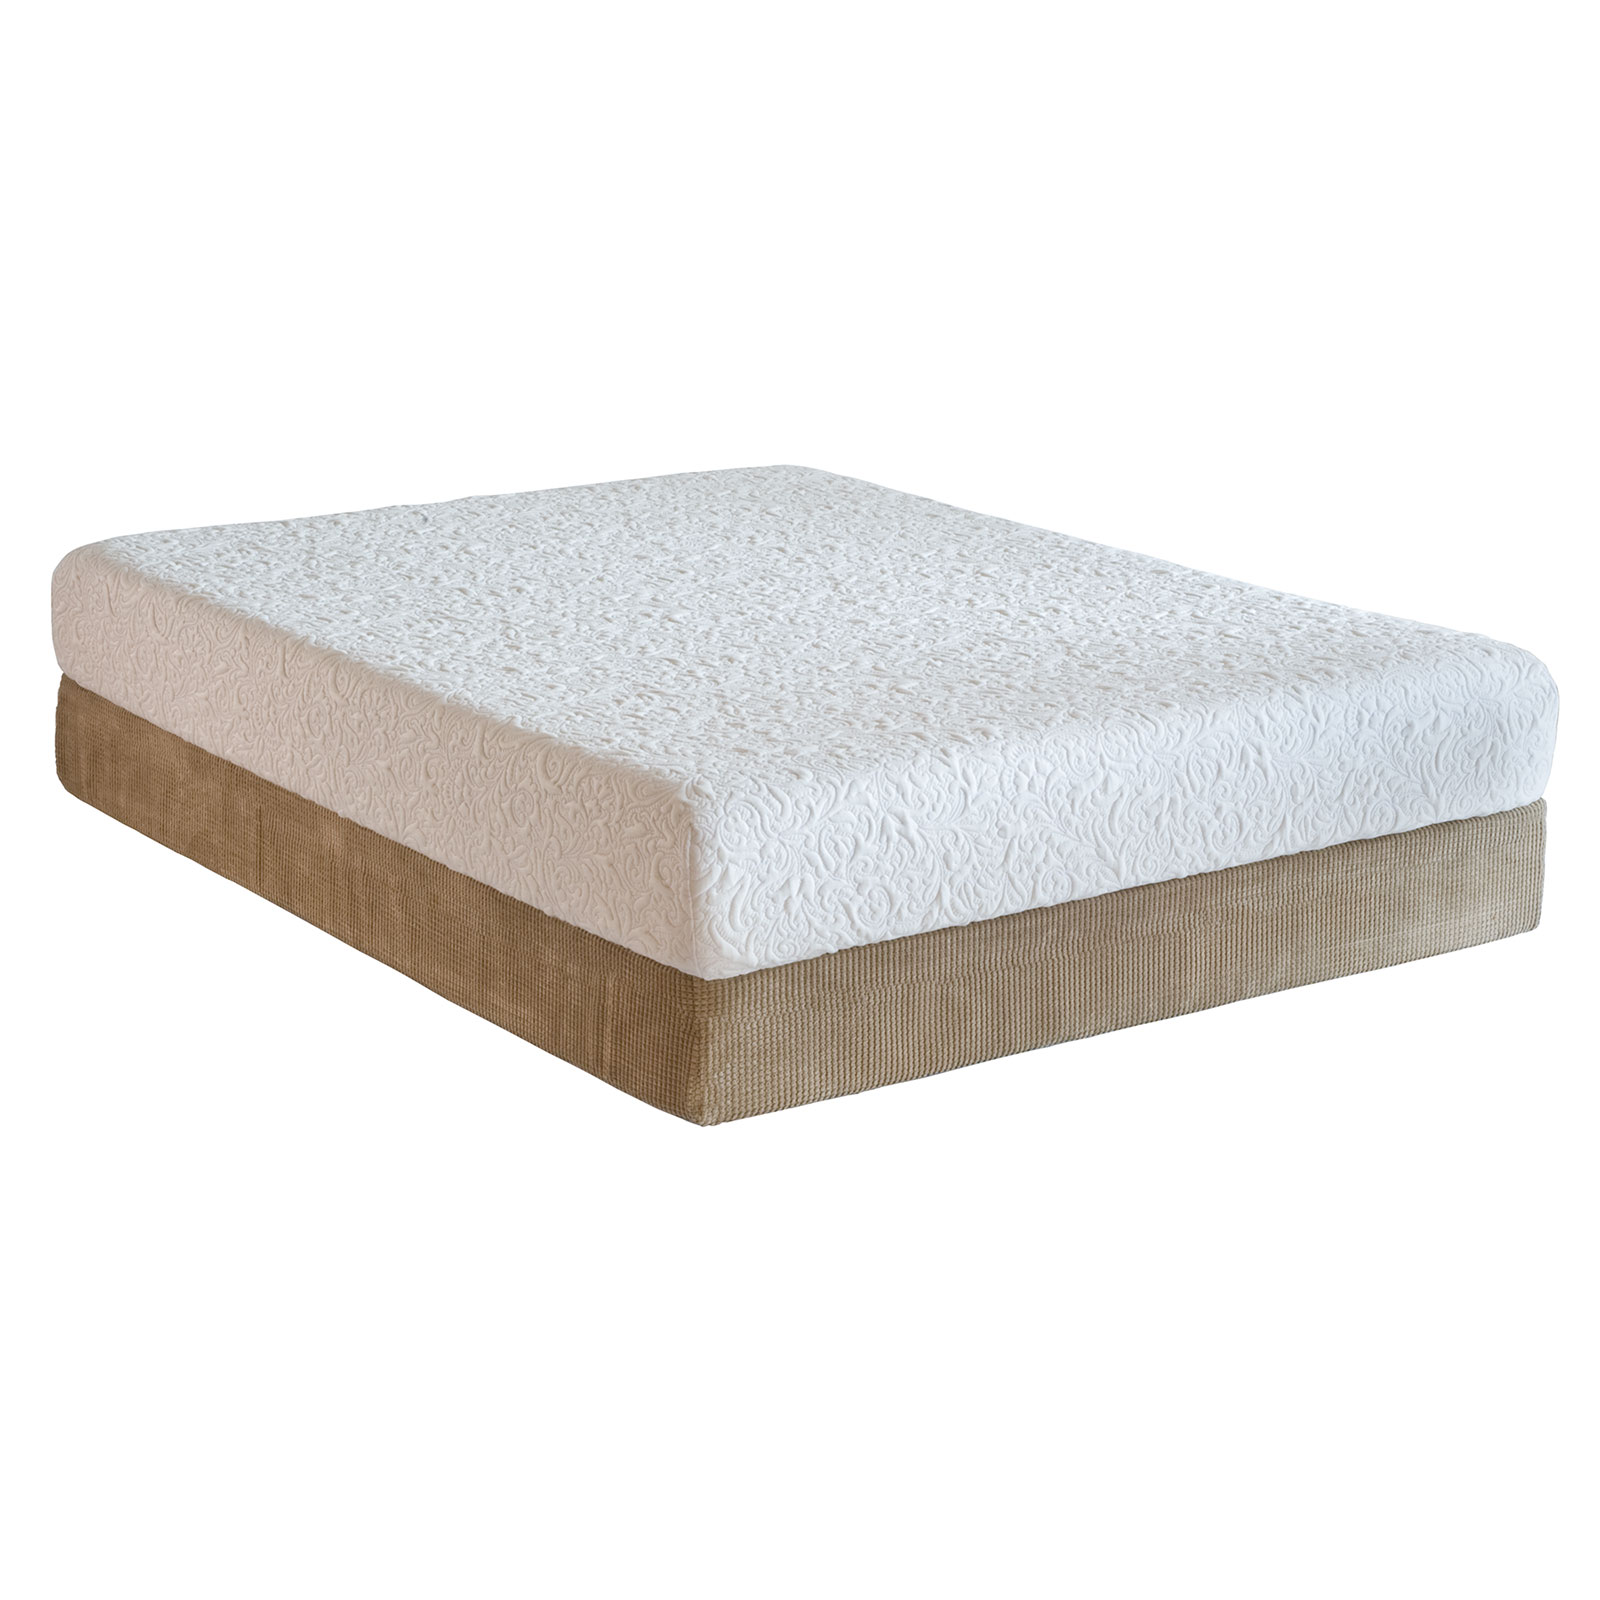 INSIGHT-Full-Extra-Long-Mattress